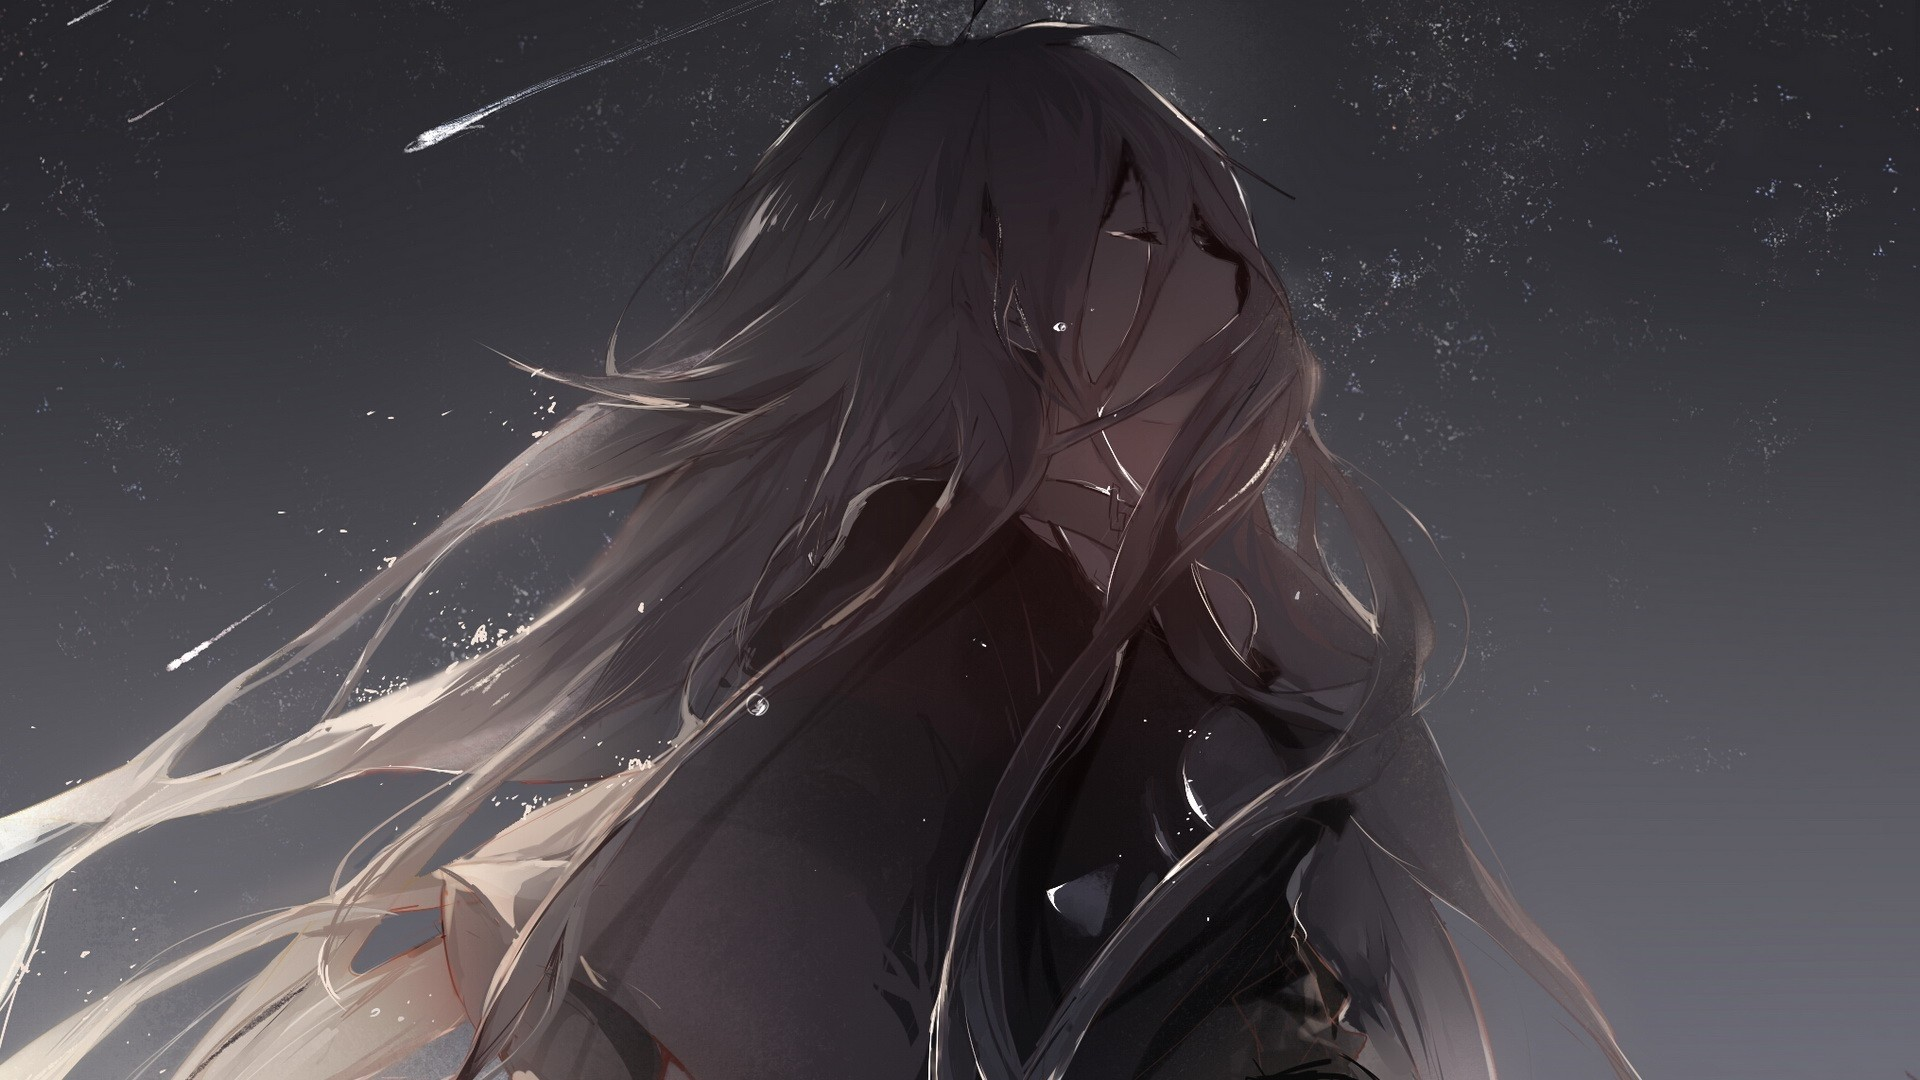 Res: 1920x1080, Best of Anime Crying Girl Wallpaper Collection - Tags Sad Anime Girl